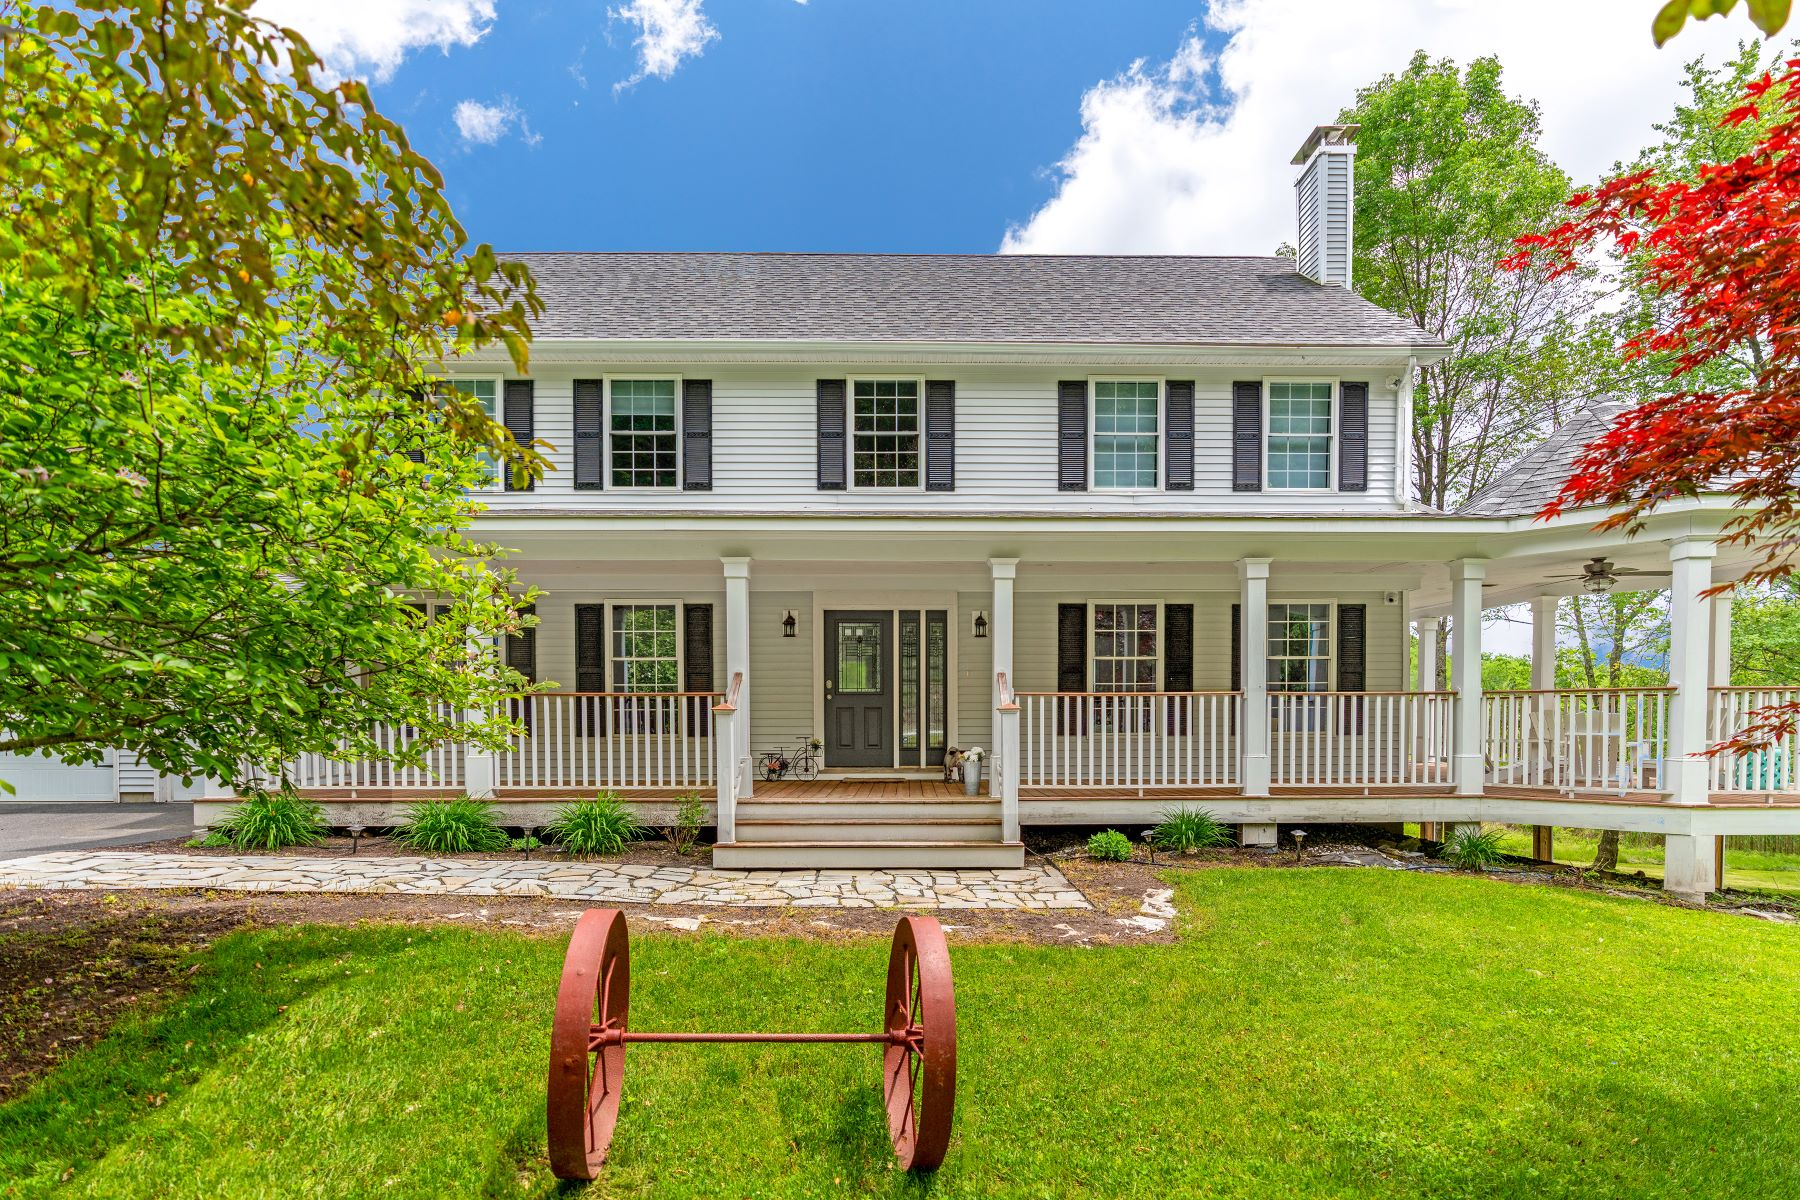 Single Family Homes for Sale at Contemporary Farmhouse in Private Setting in South Kent 25 Brown Road Kent, Connecticut 06785 United States